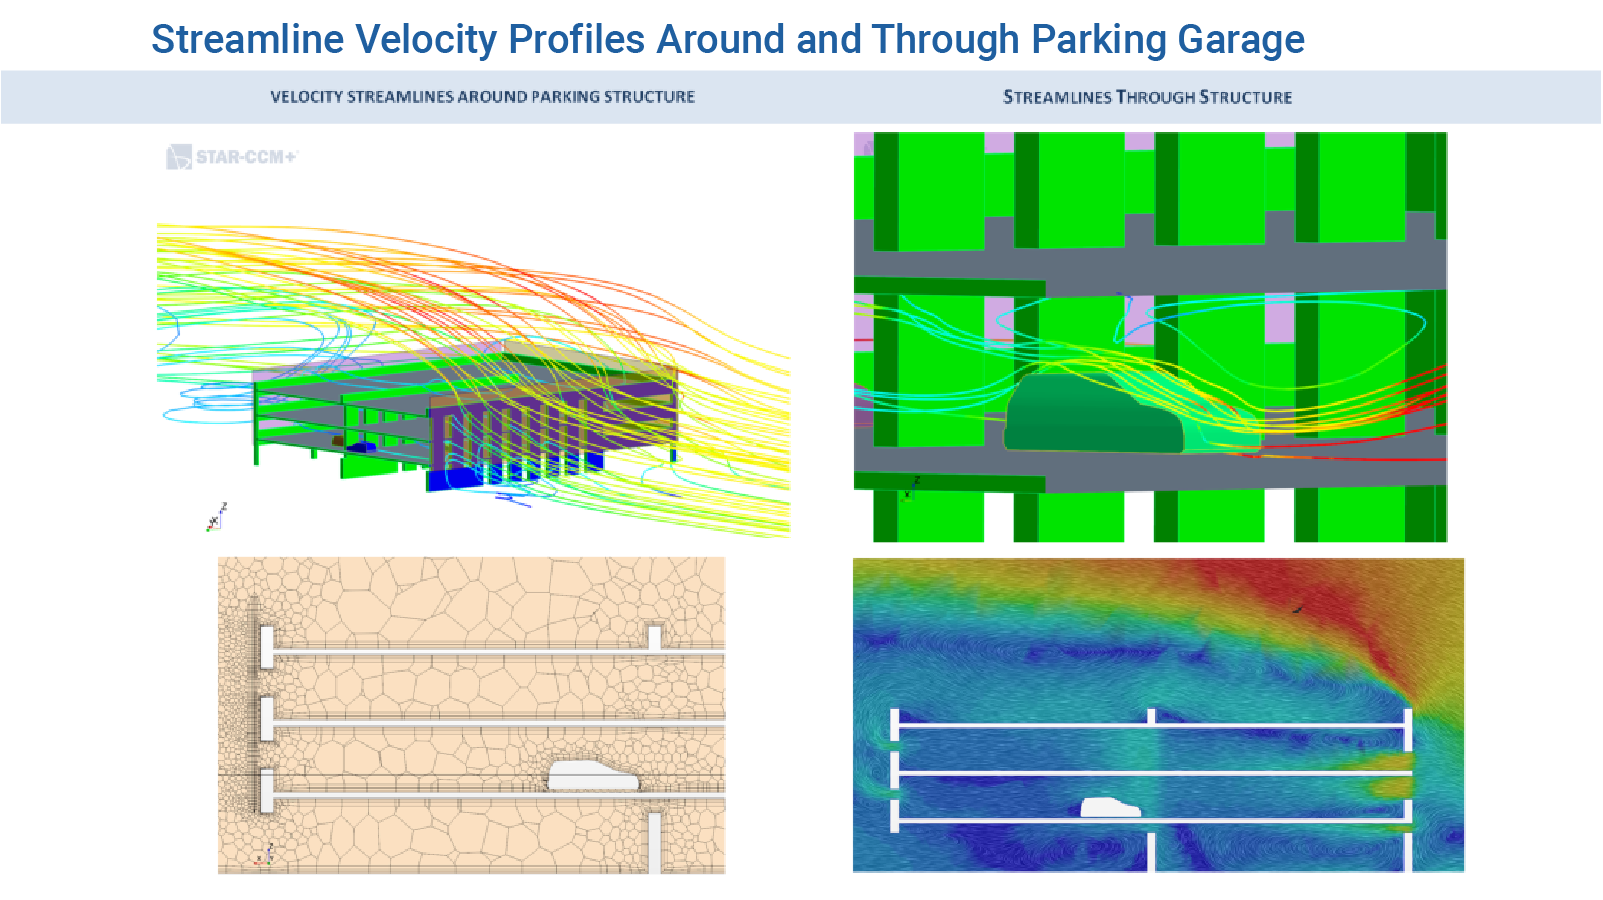 STAR-CCM+ modeling details to capture airflow through the parking garage structure